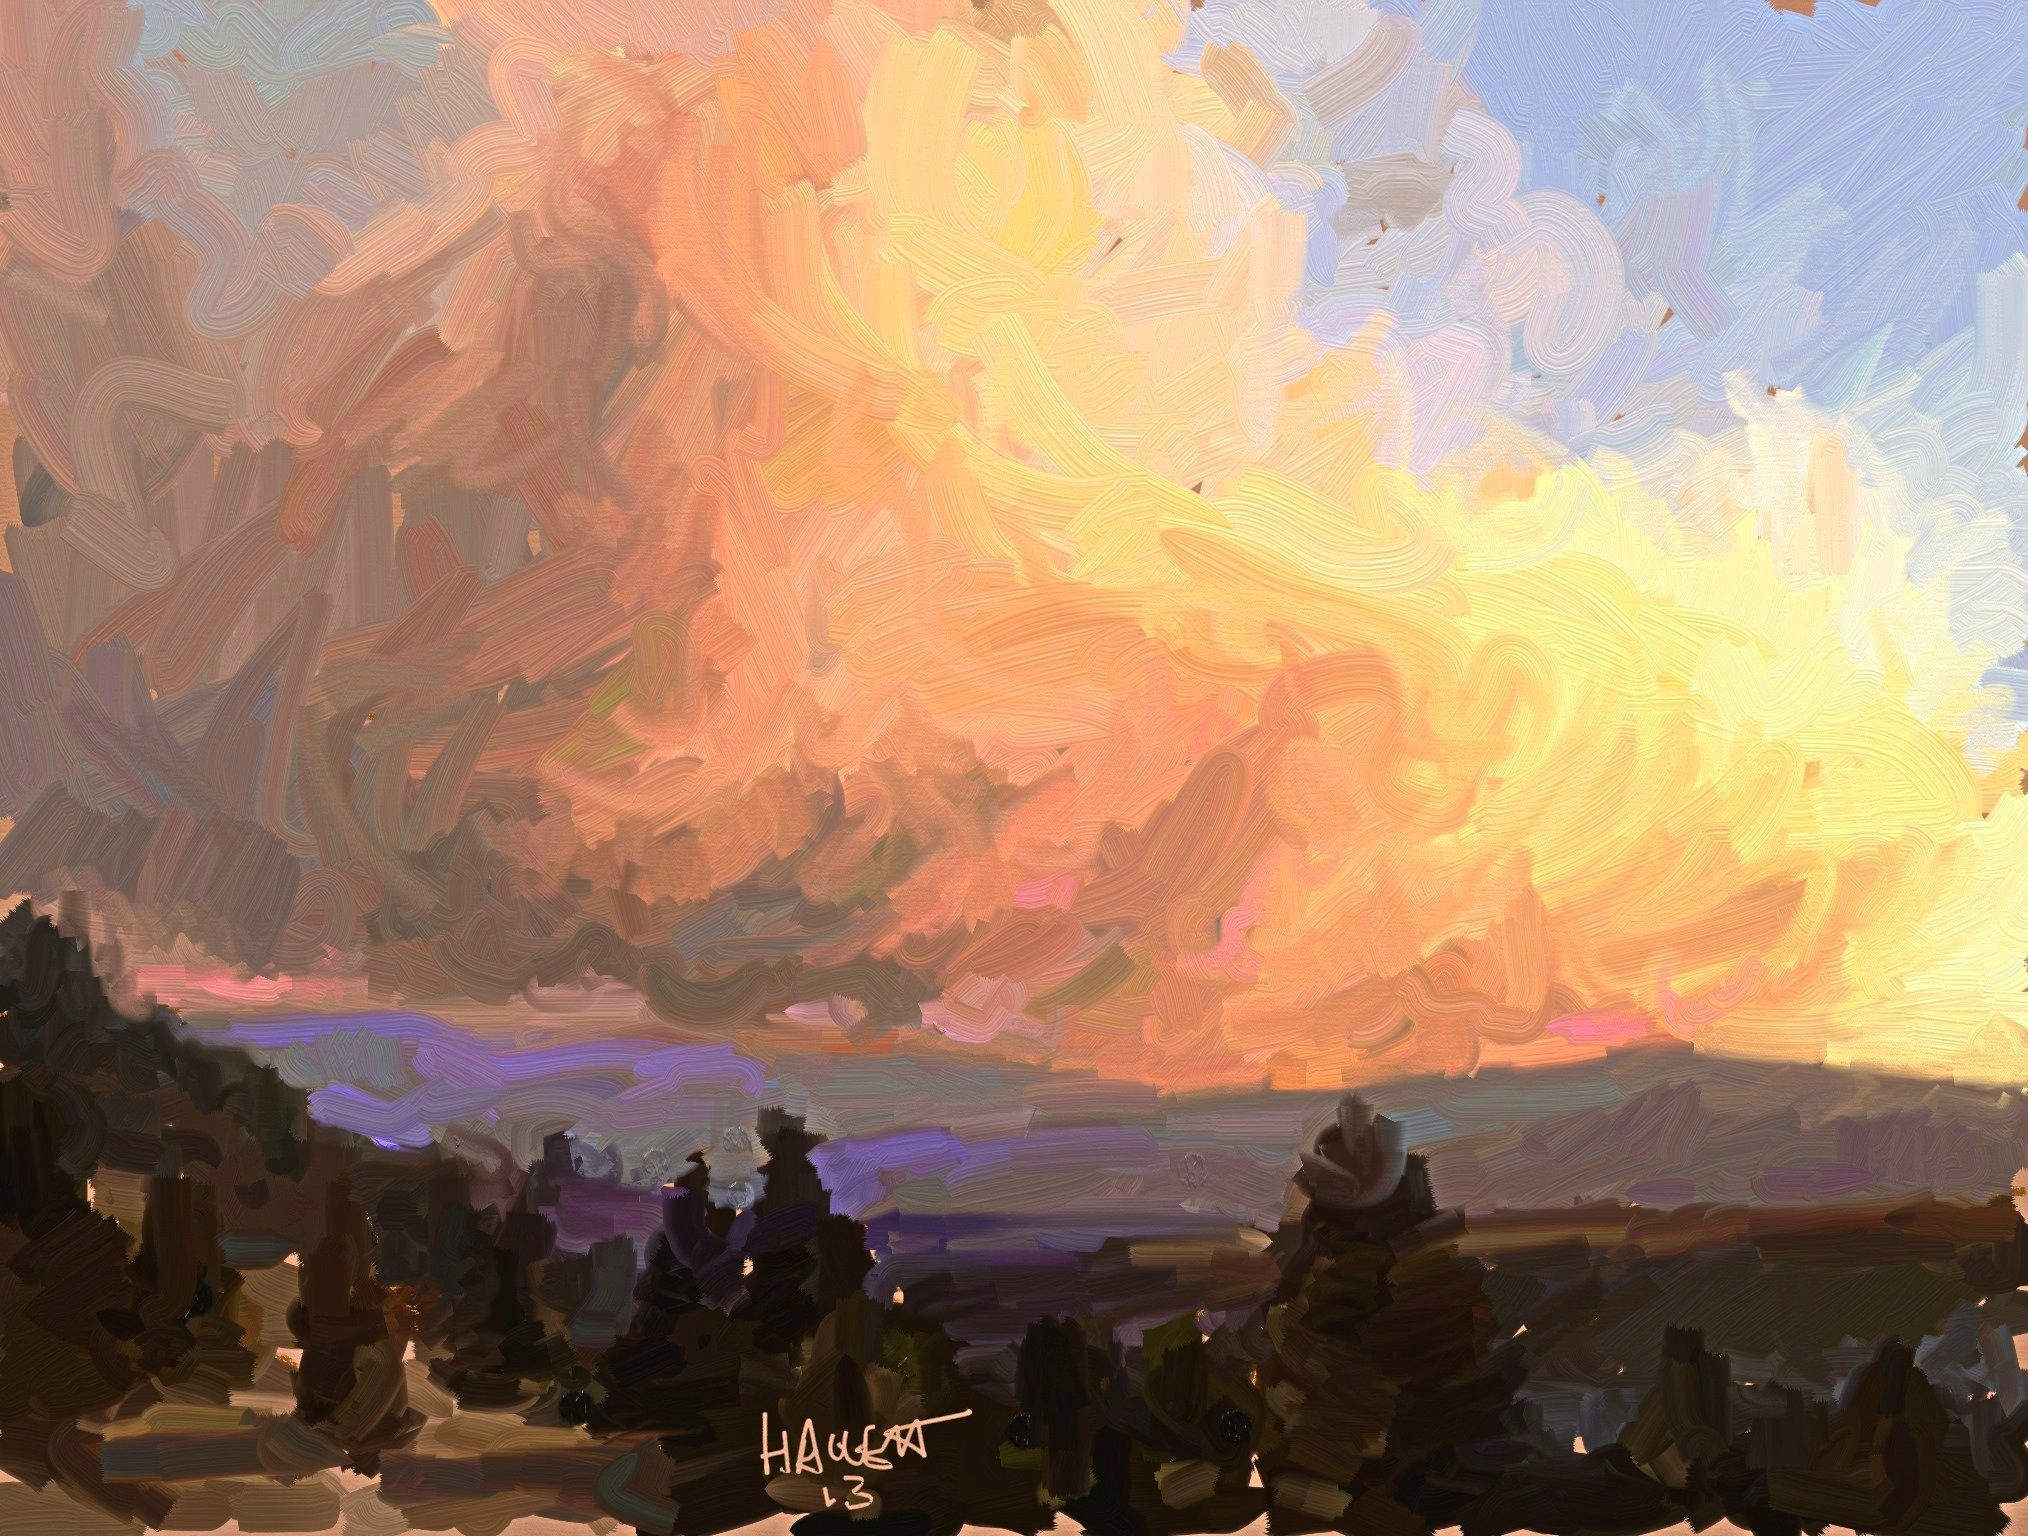 'Lolo Creek Complex' ipad sketch  Posted by benhaggett on August 19, 2013